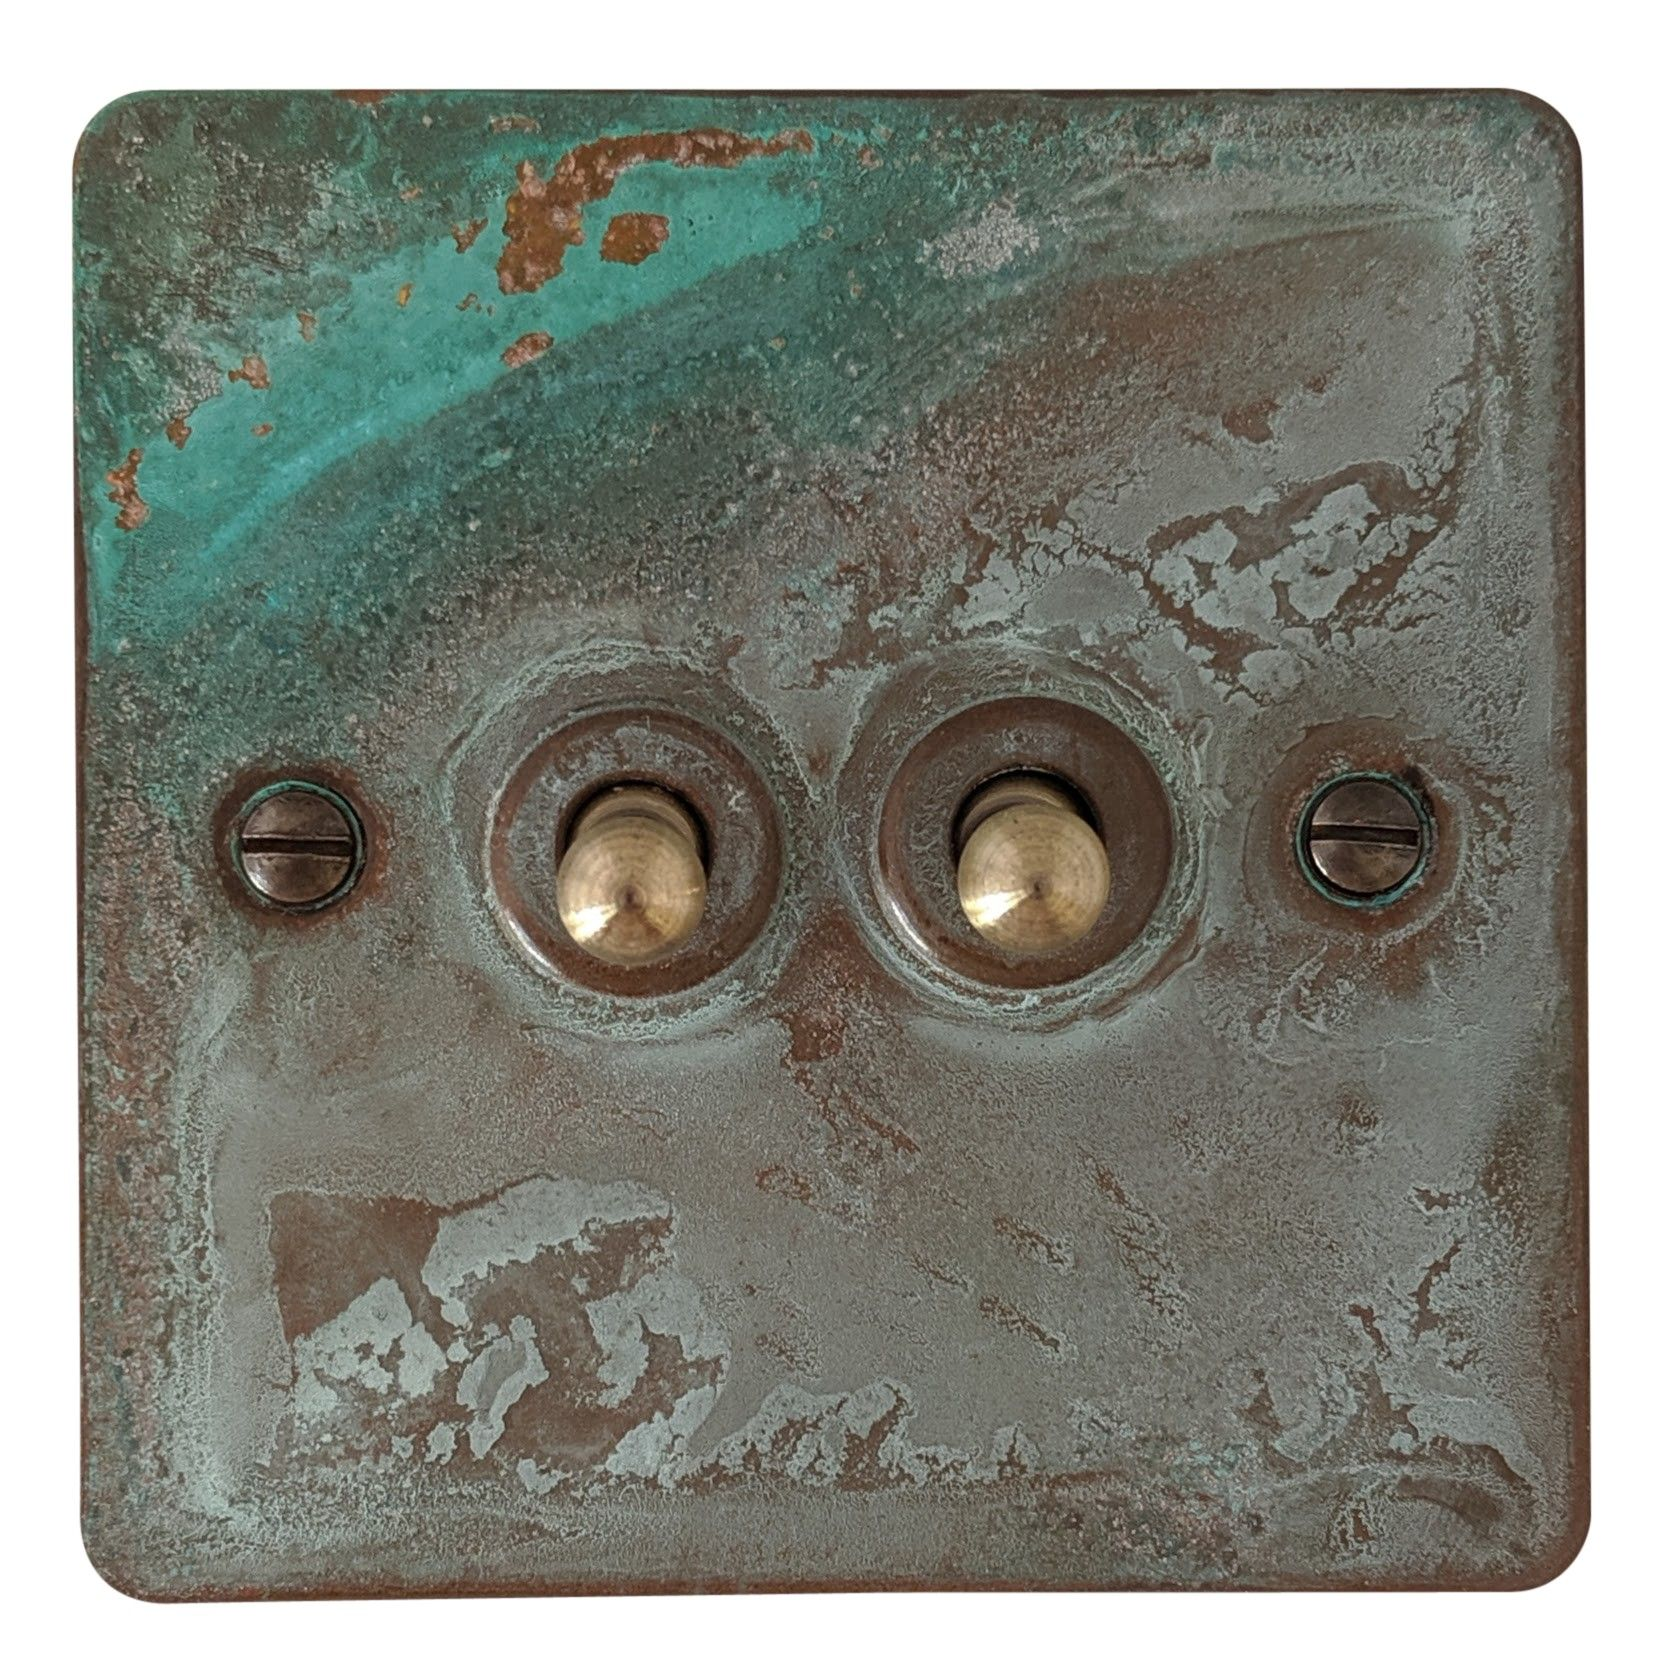 G&H FV282 Flat Plate Verdigris 2 Gang 1 or 2 Way Toggle Light Switch